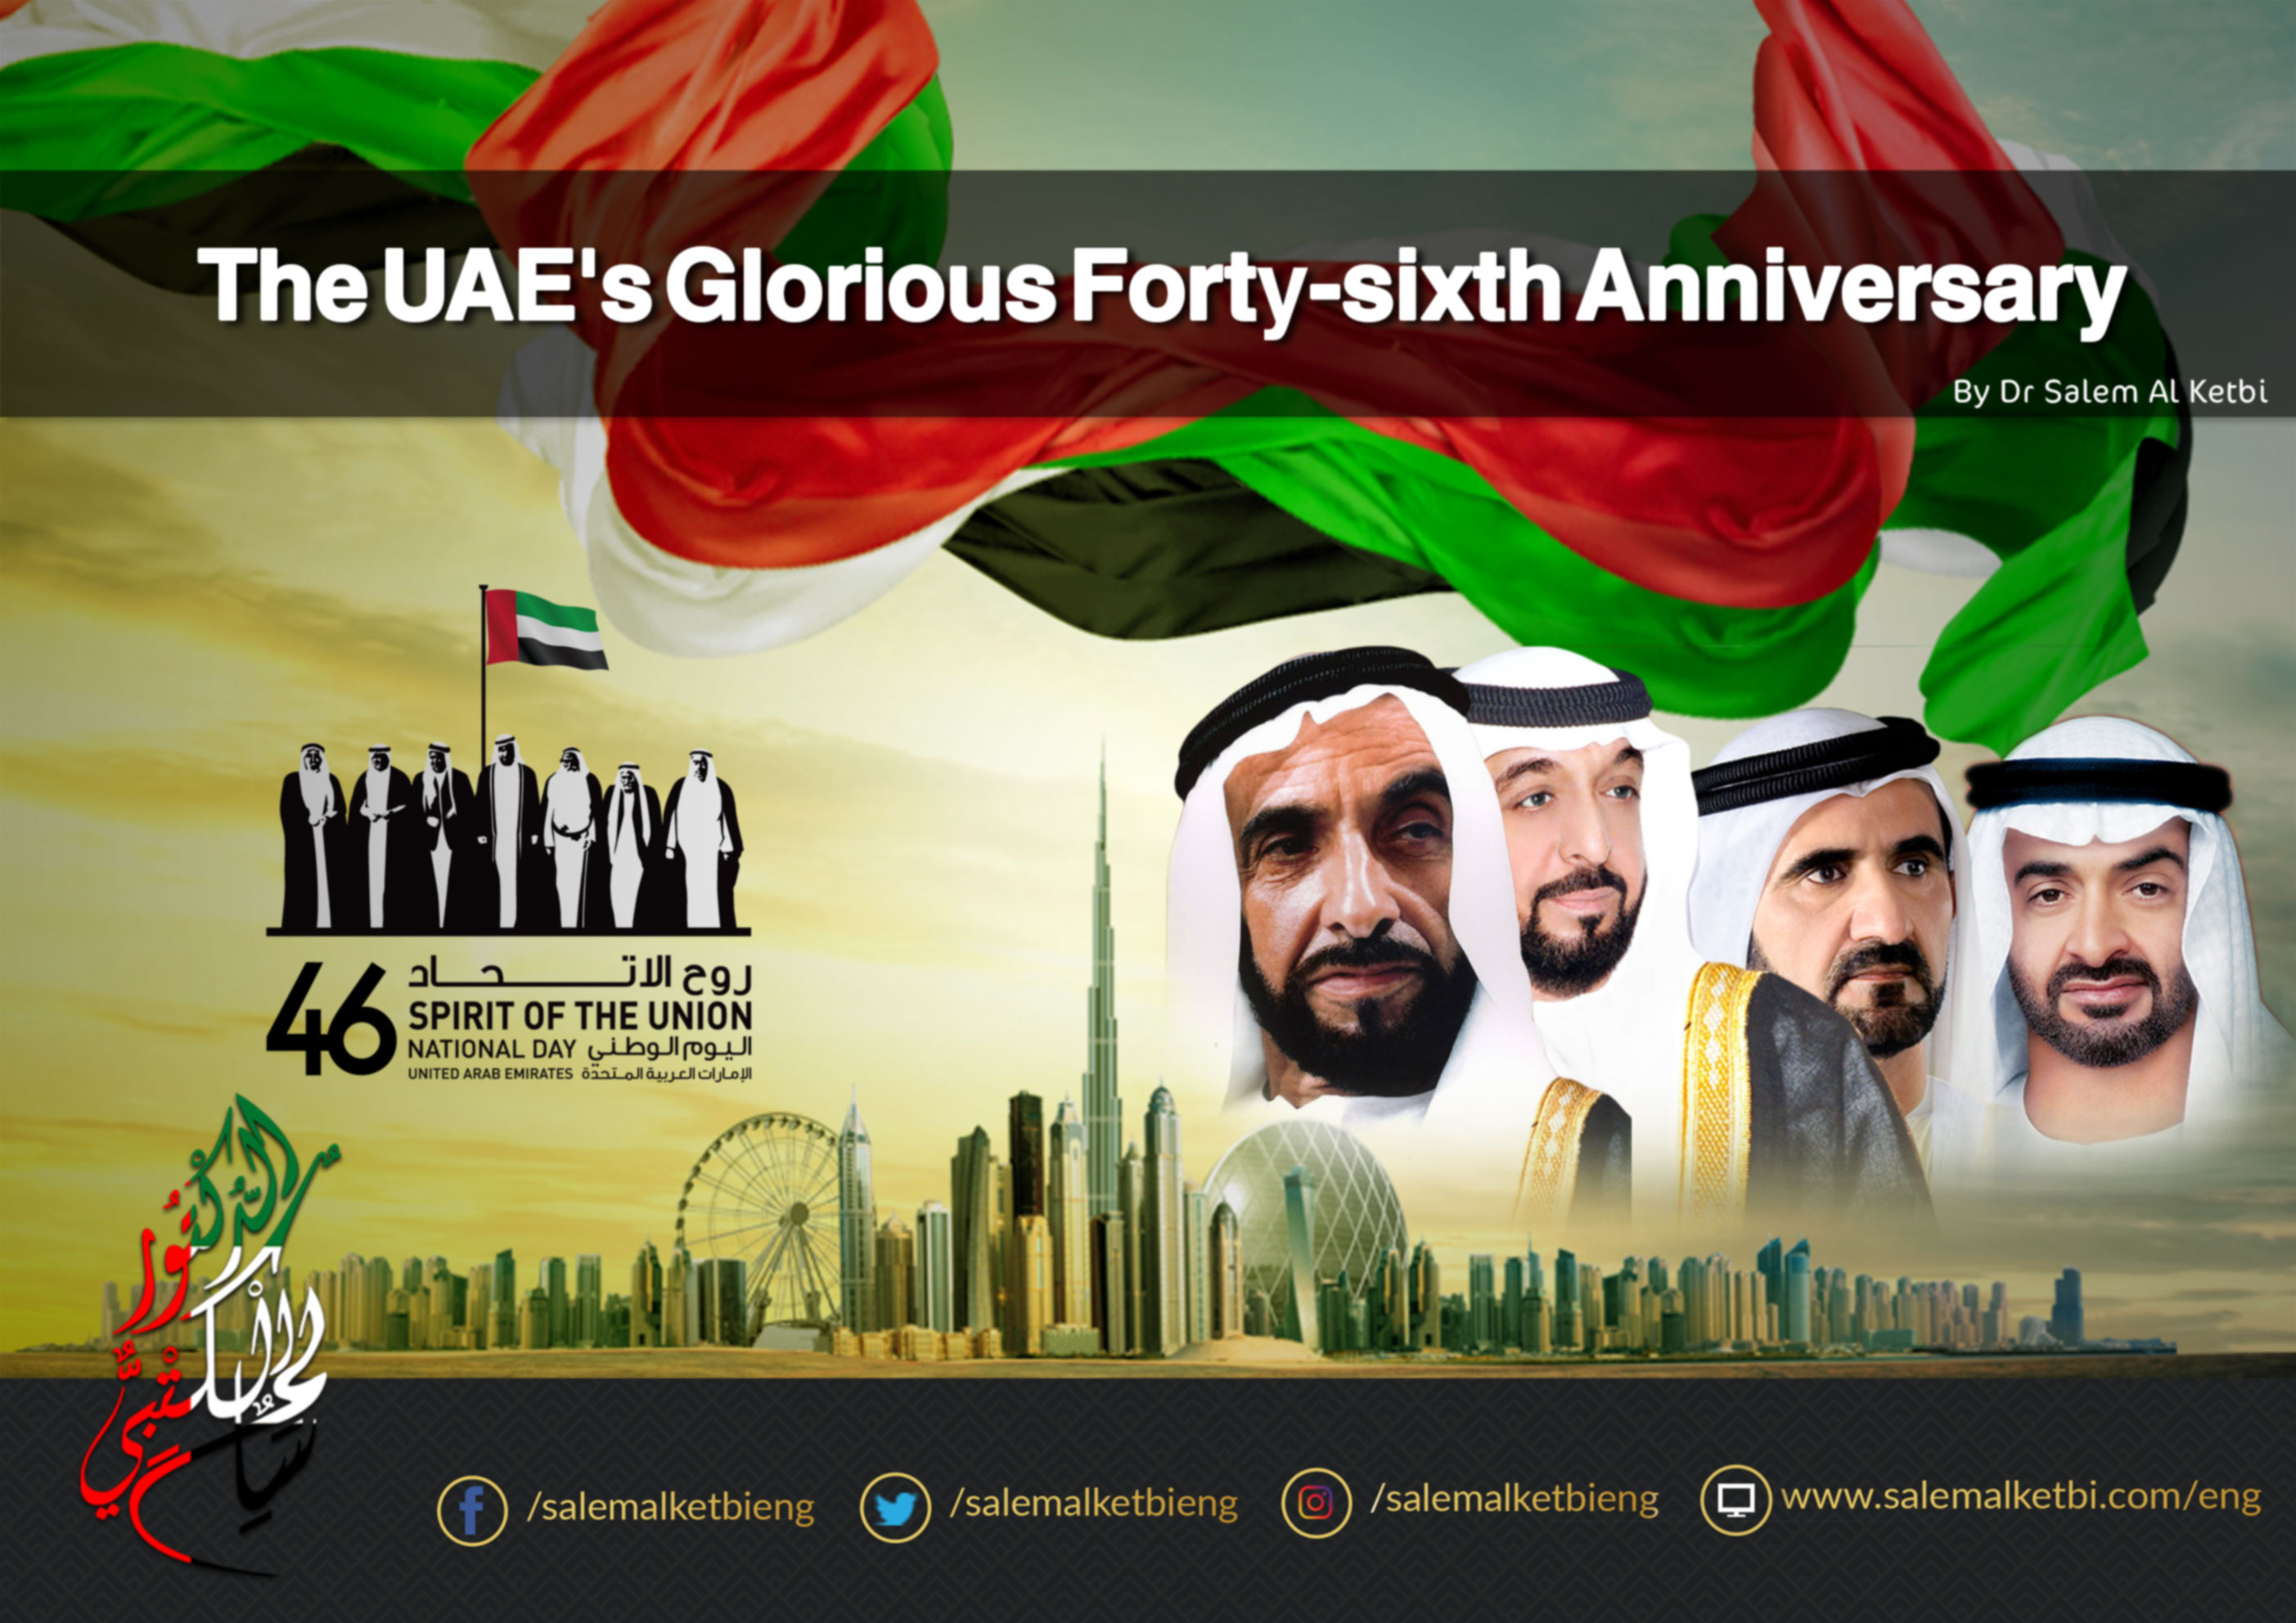 The UAE's Glorious Forty-sixth Anniversary